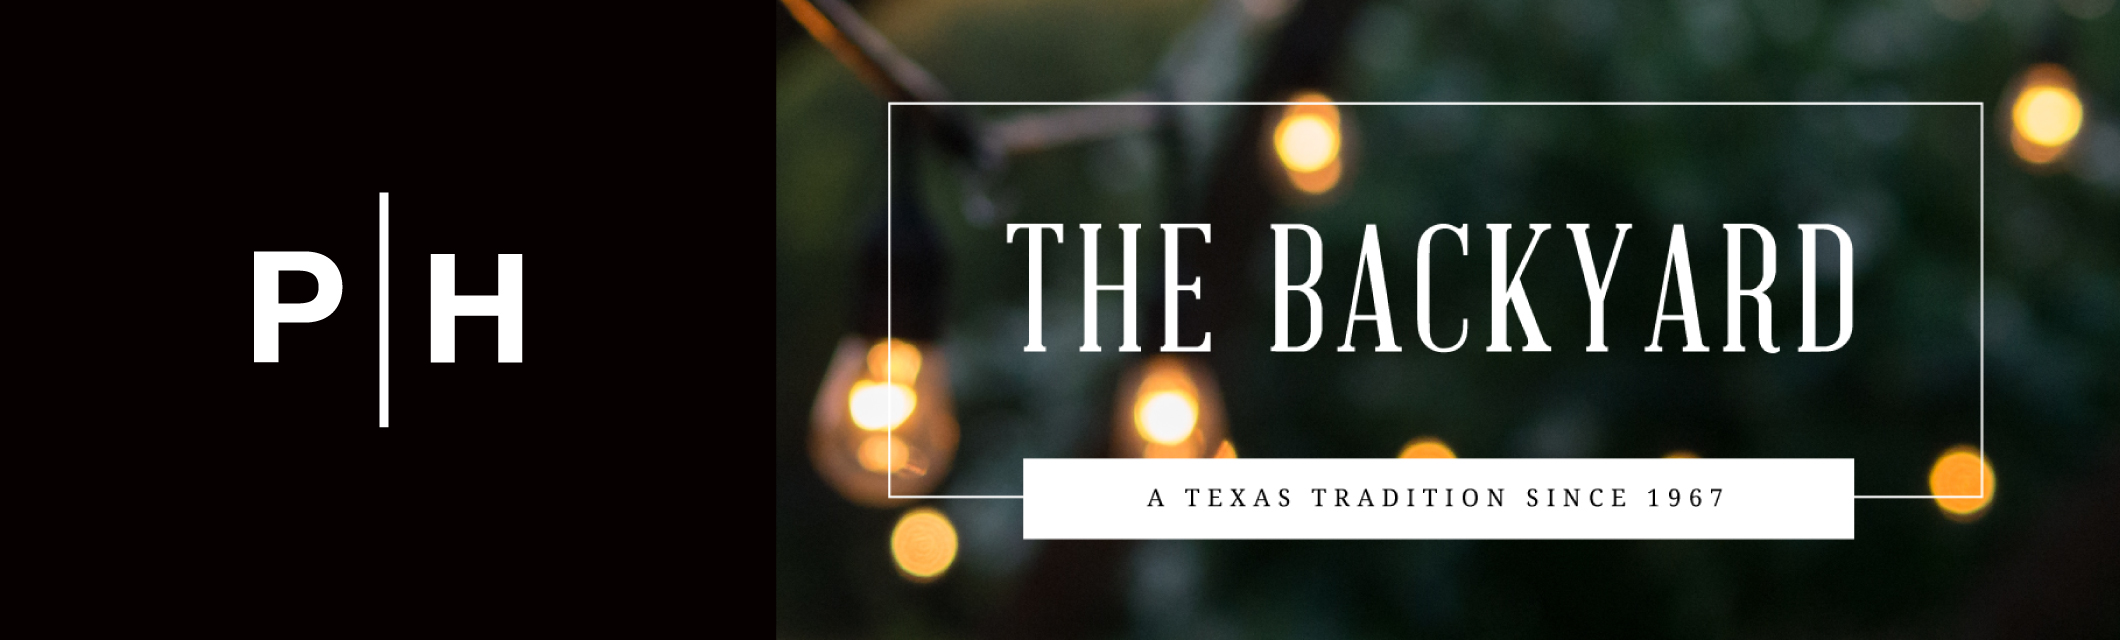 the backyard blog logo with photo of patio edison light bulbs at dusk